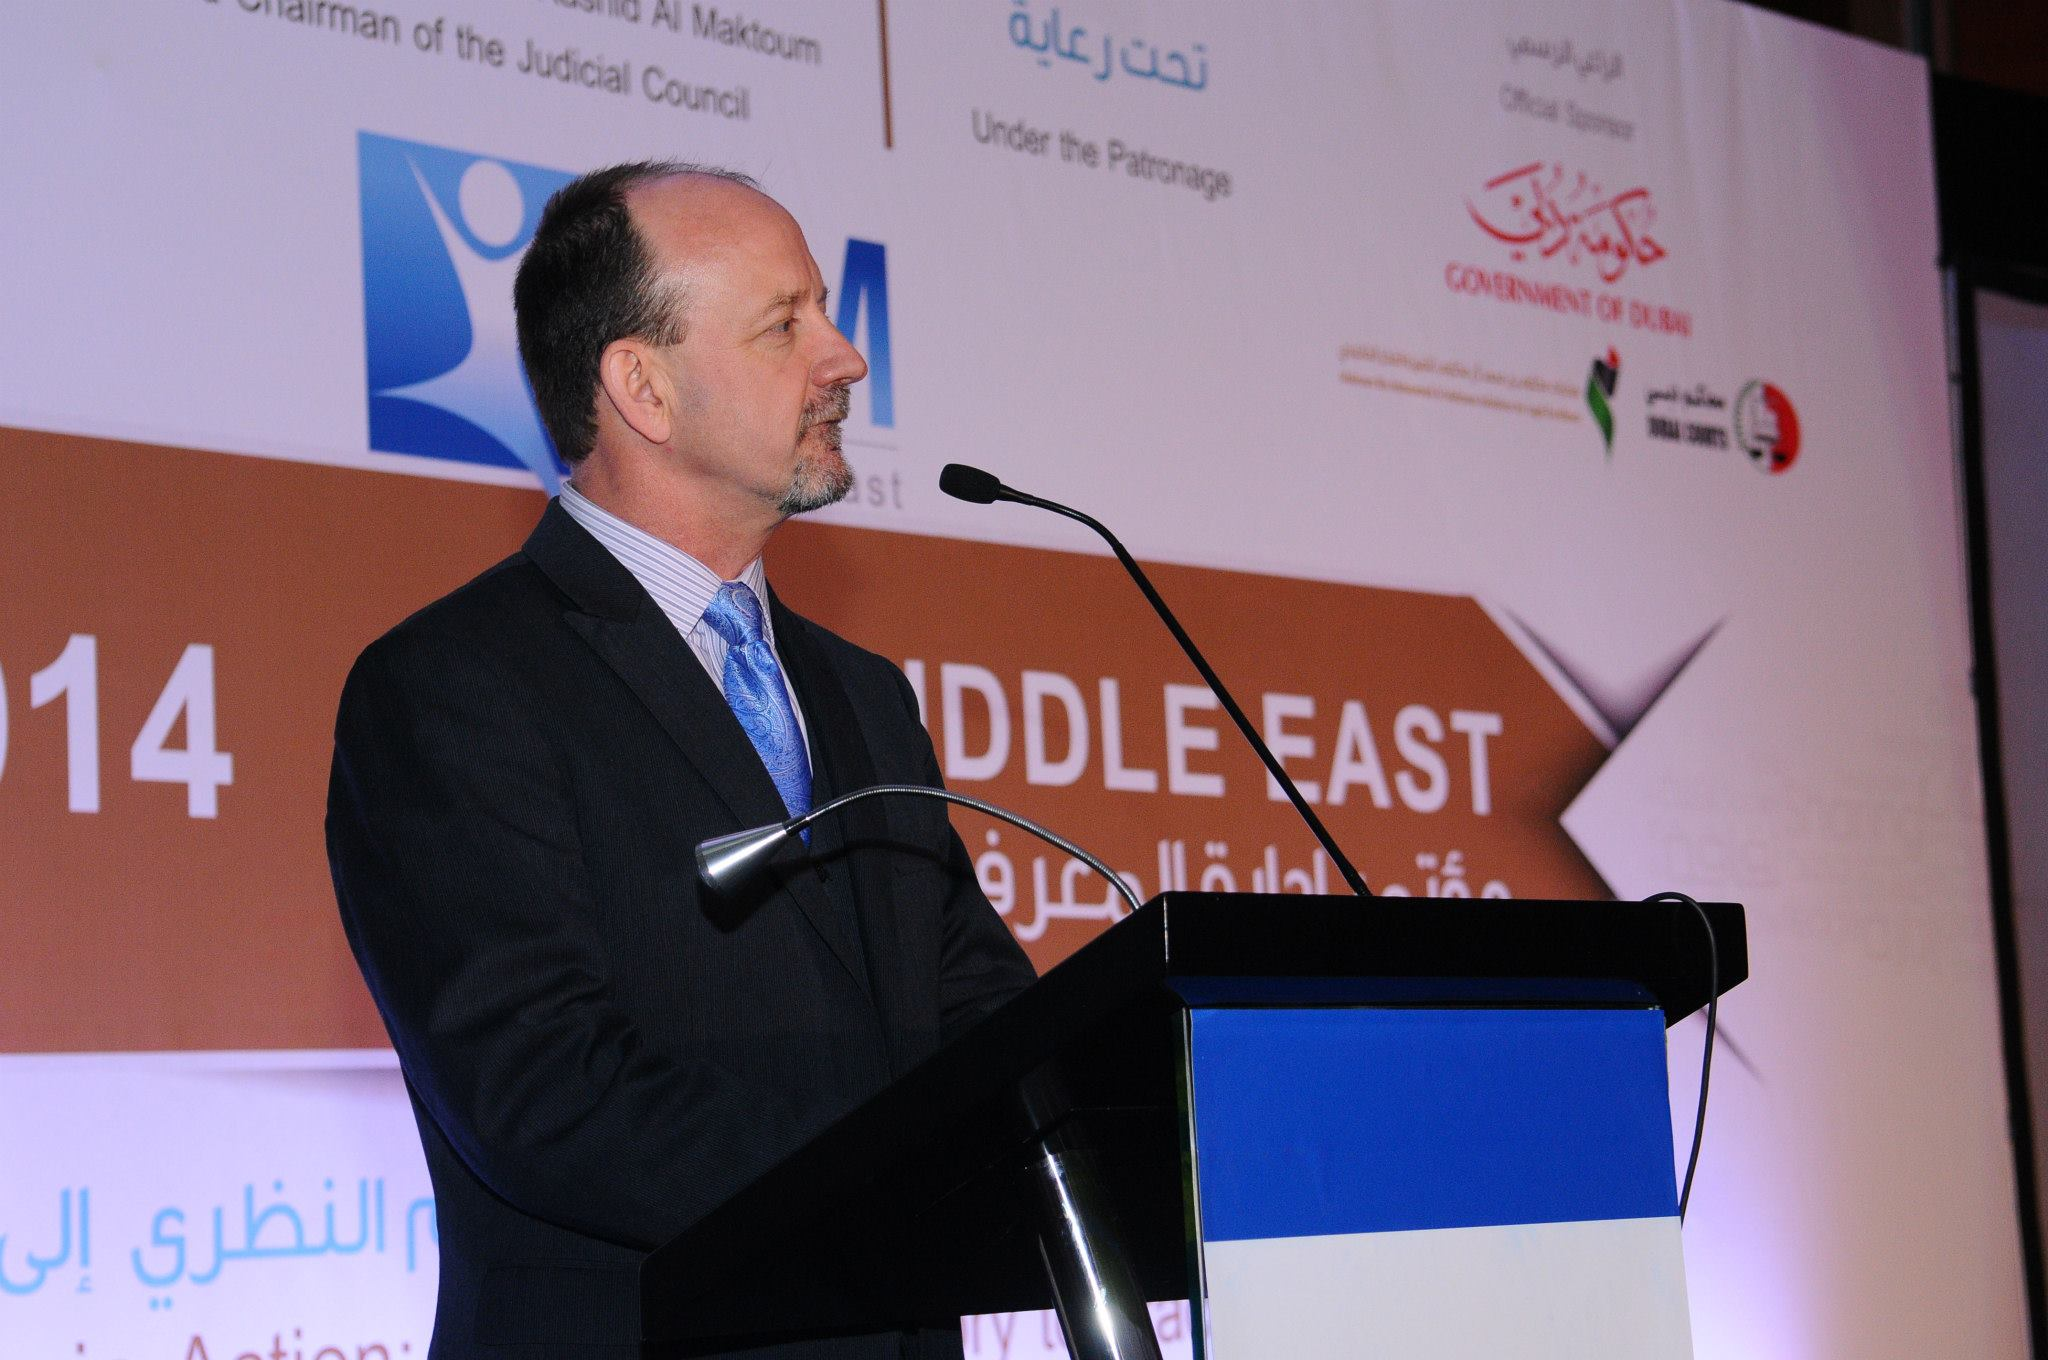 KM Middle East 2014